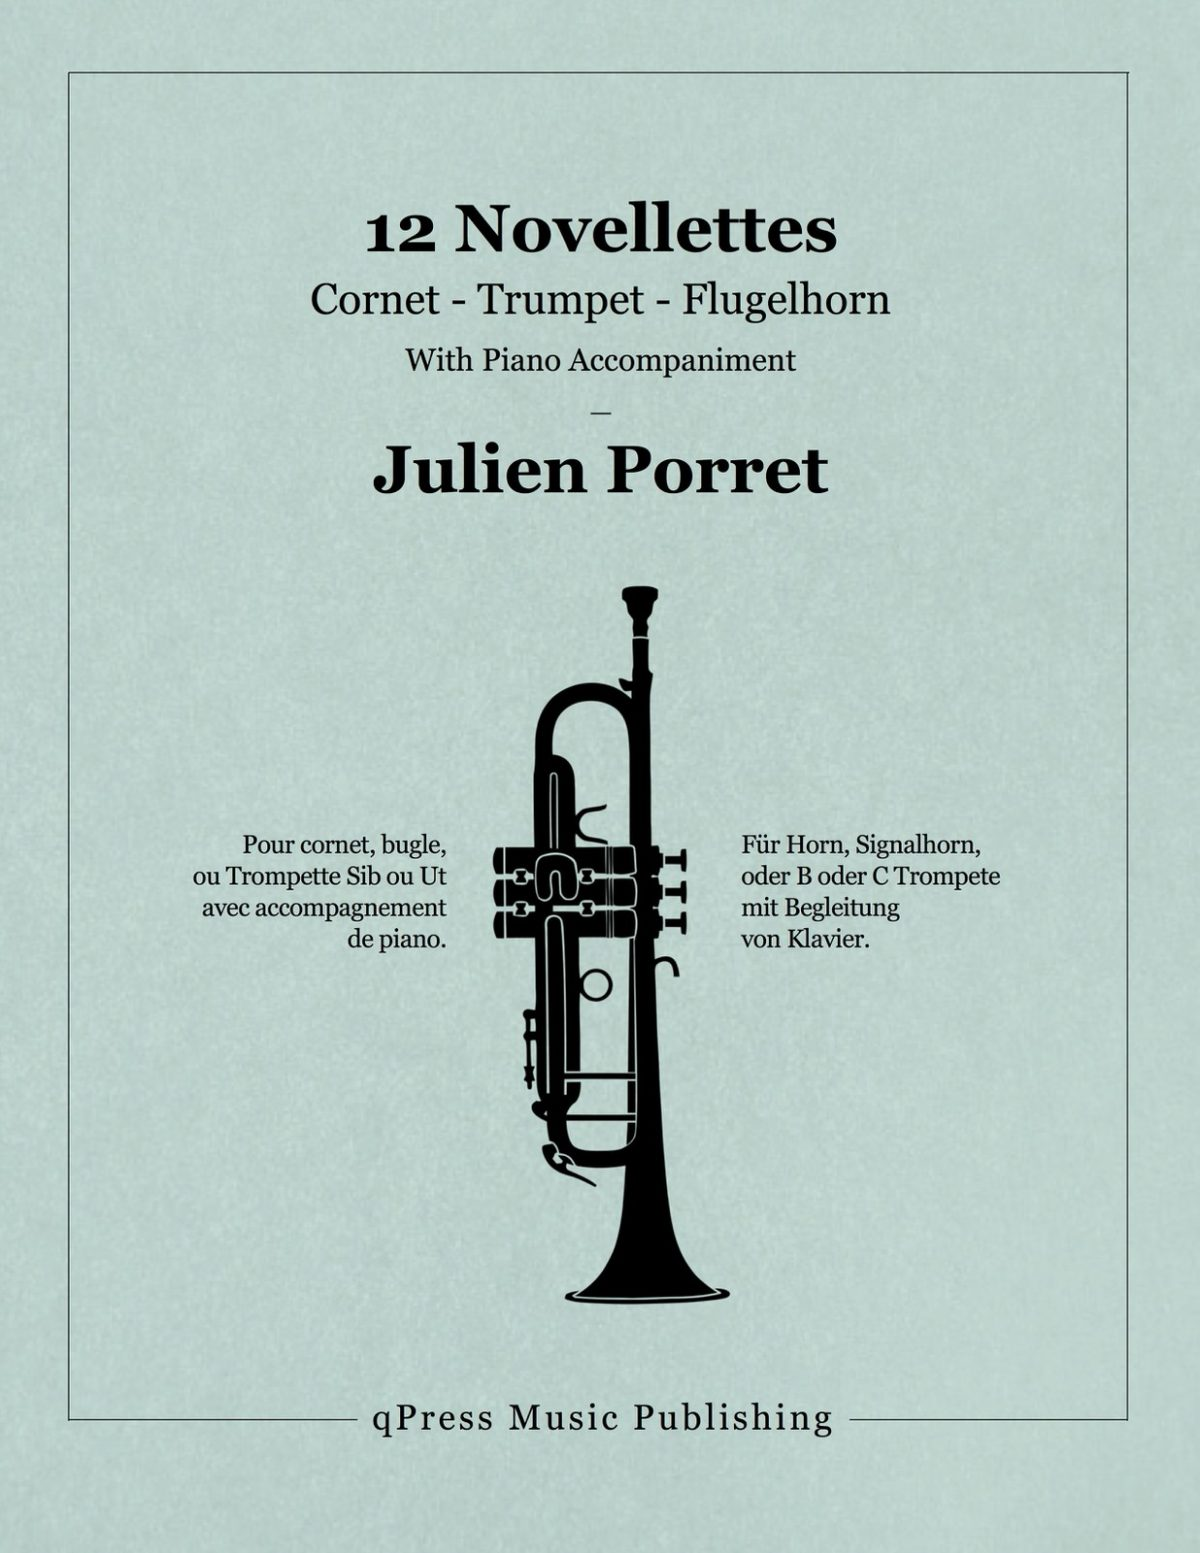 Porret, 12 Novellettes (Score and Parts)-p01